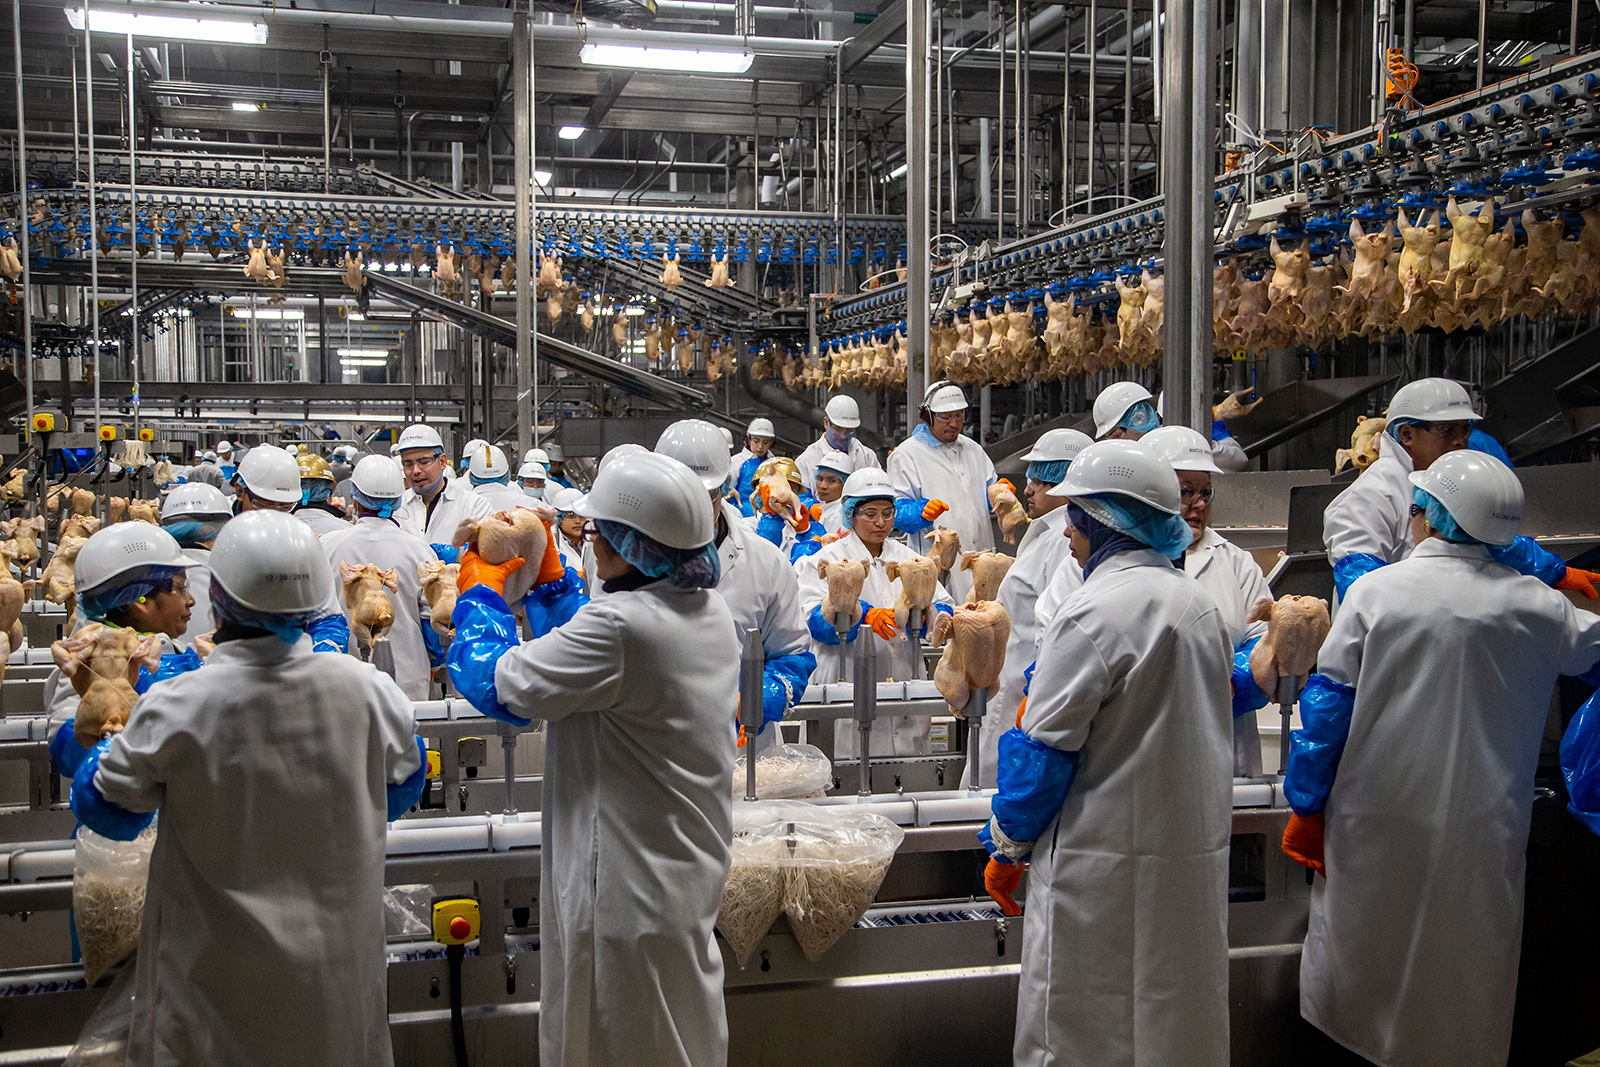 Workers process around 200,000 chickens a day for Costco at the Lincoln Premium Poultry plant in Fremont, Nebraska February 27.